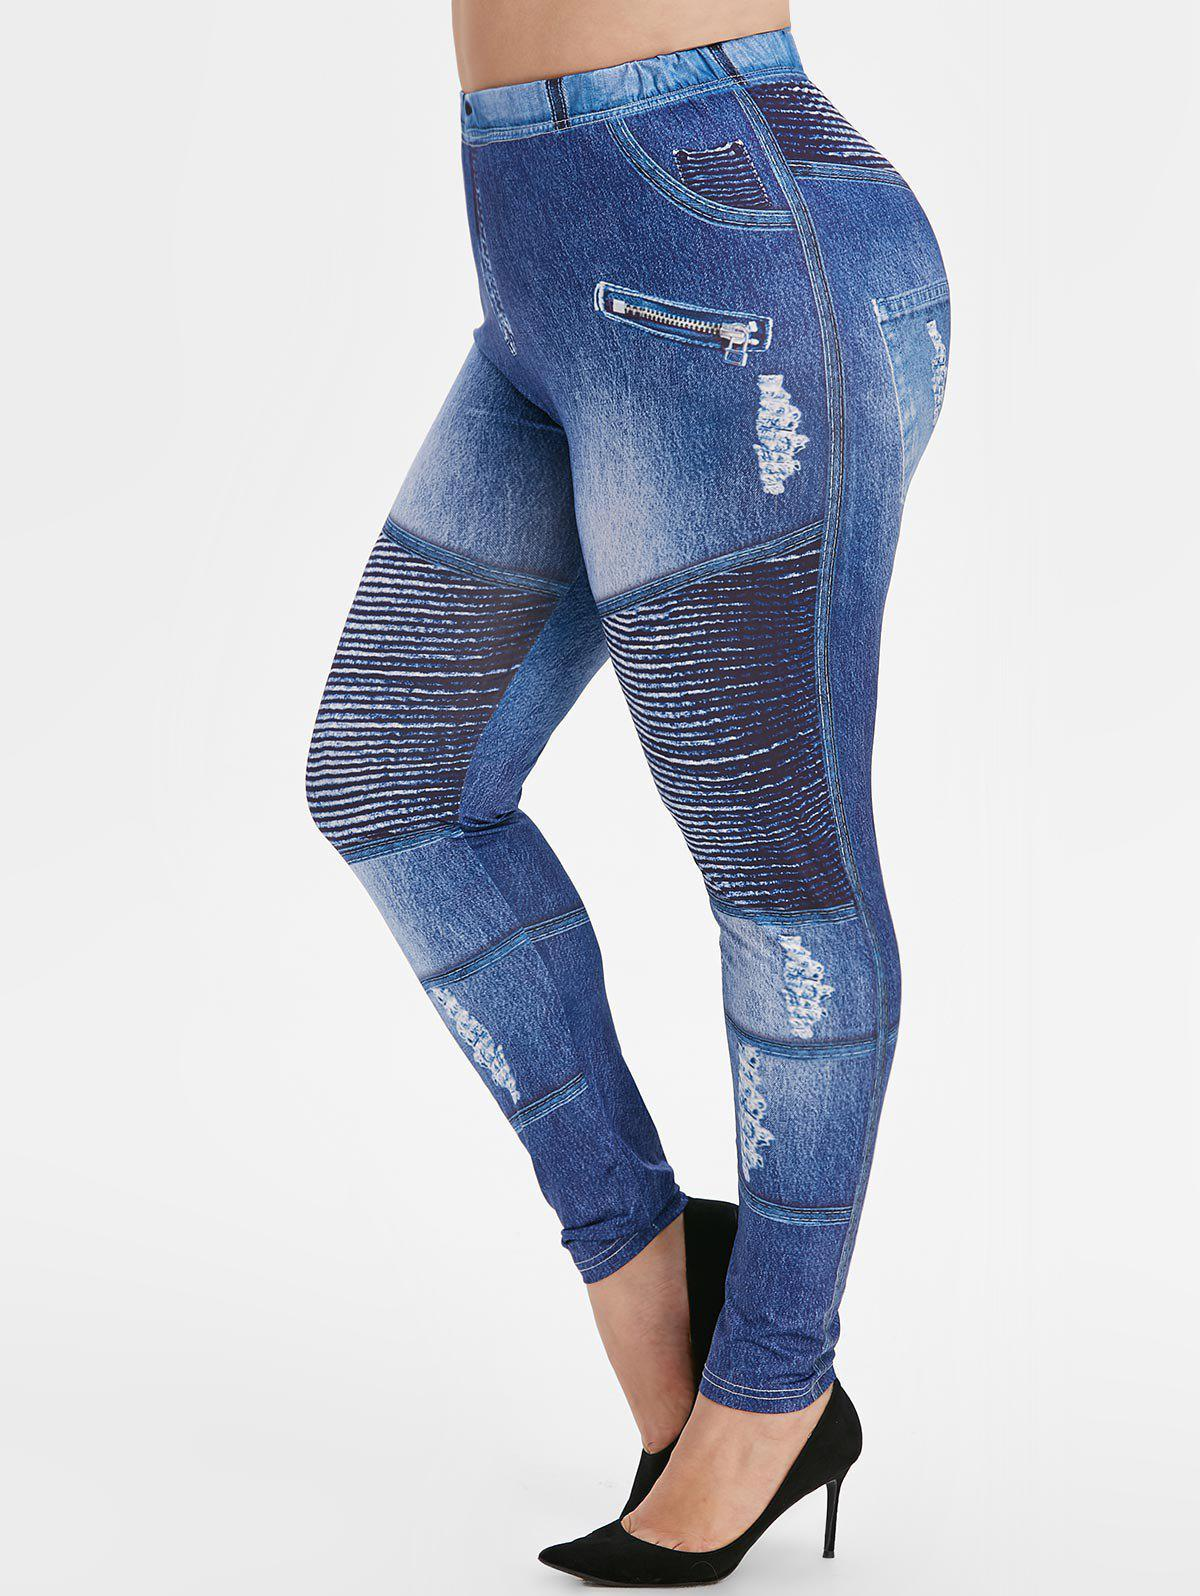 Plus Size Ripped Jean Imprimer Leggings Maigre 3D Bleu Myrtille 1X